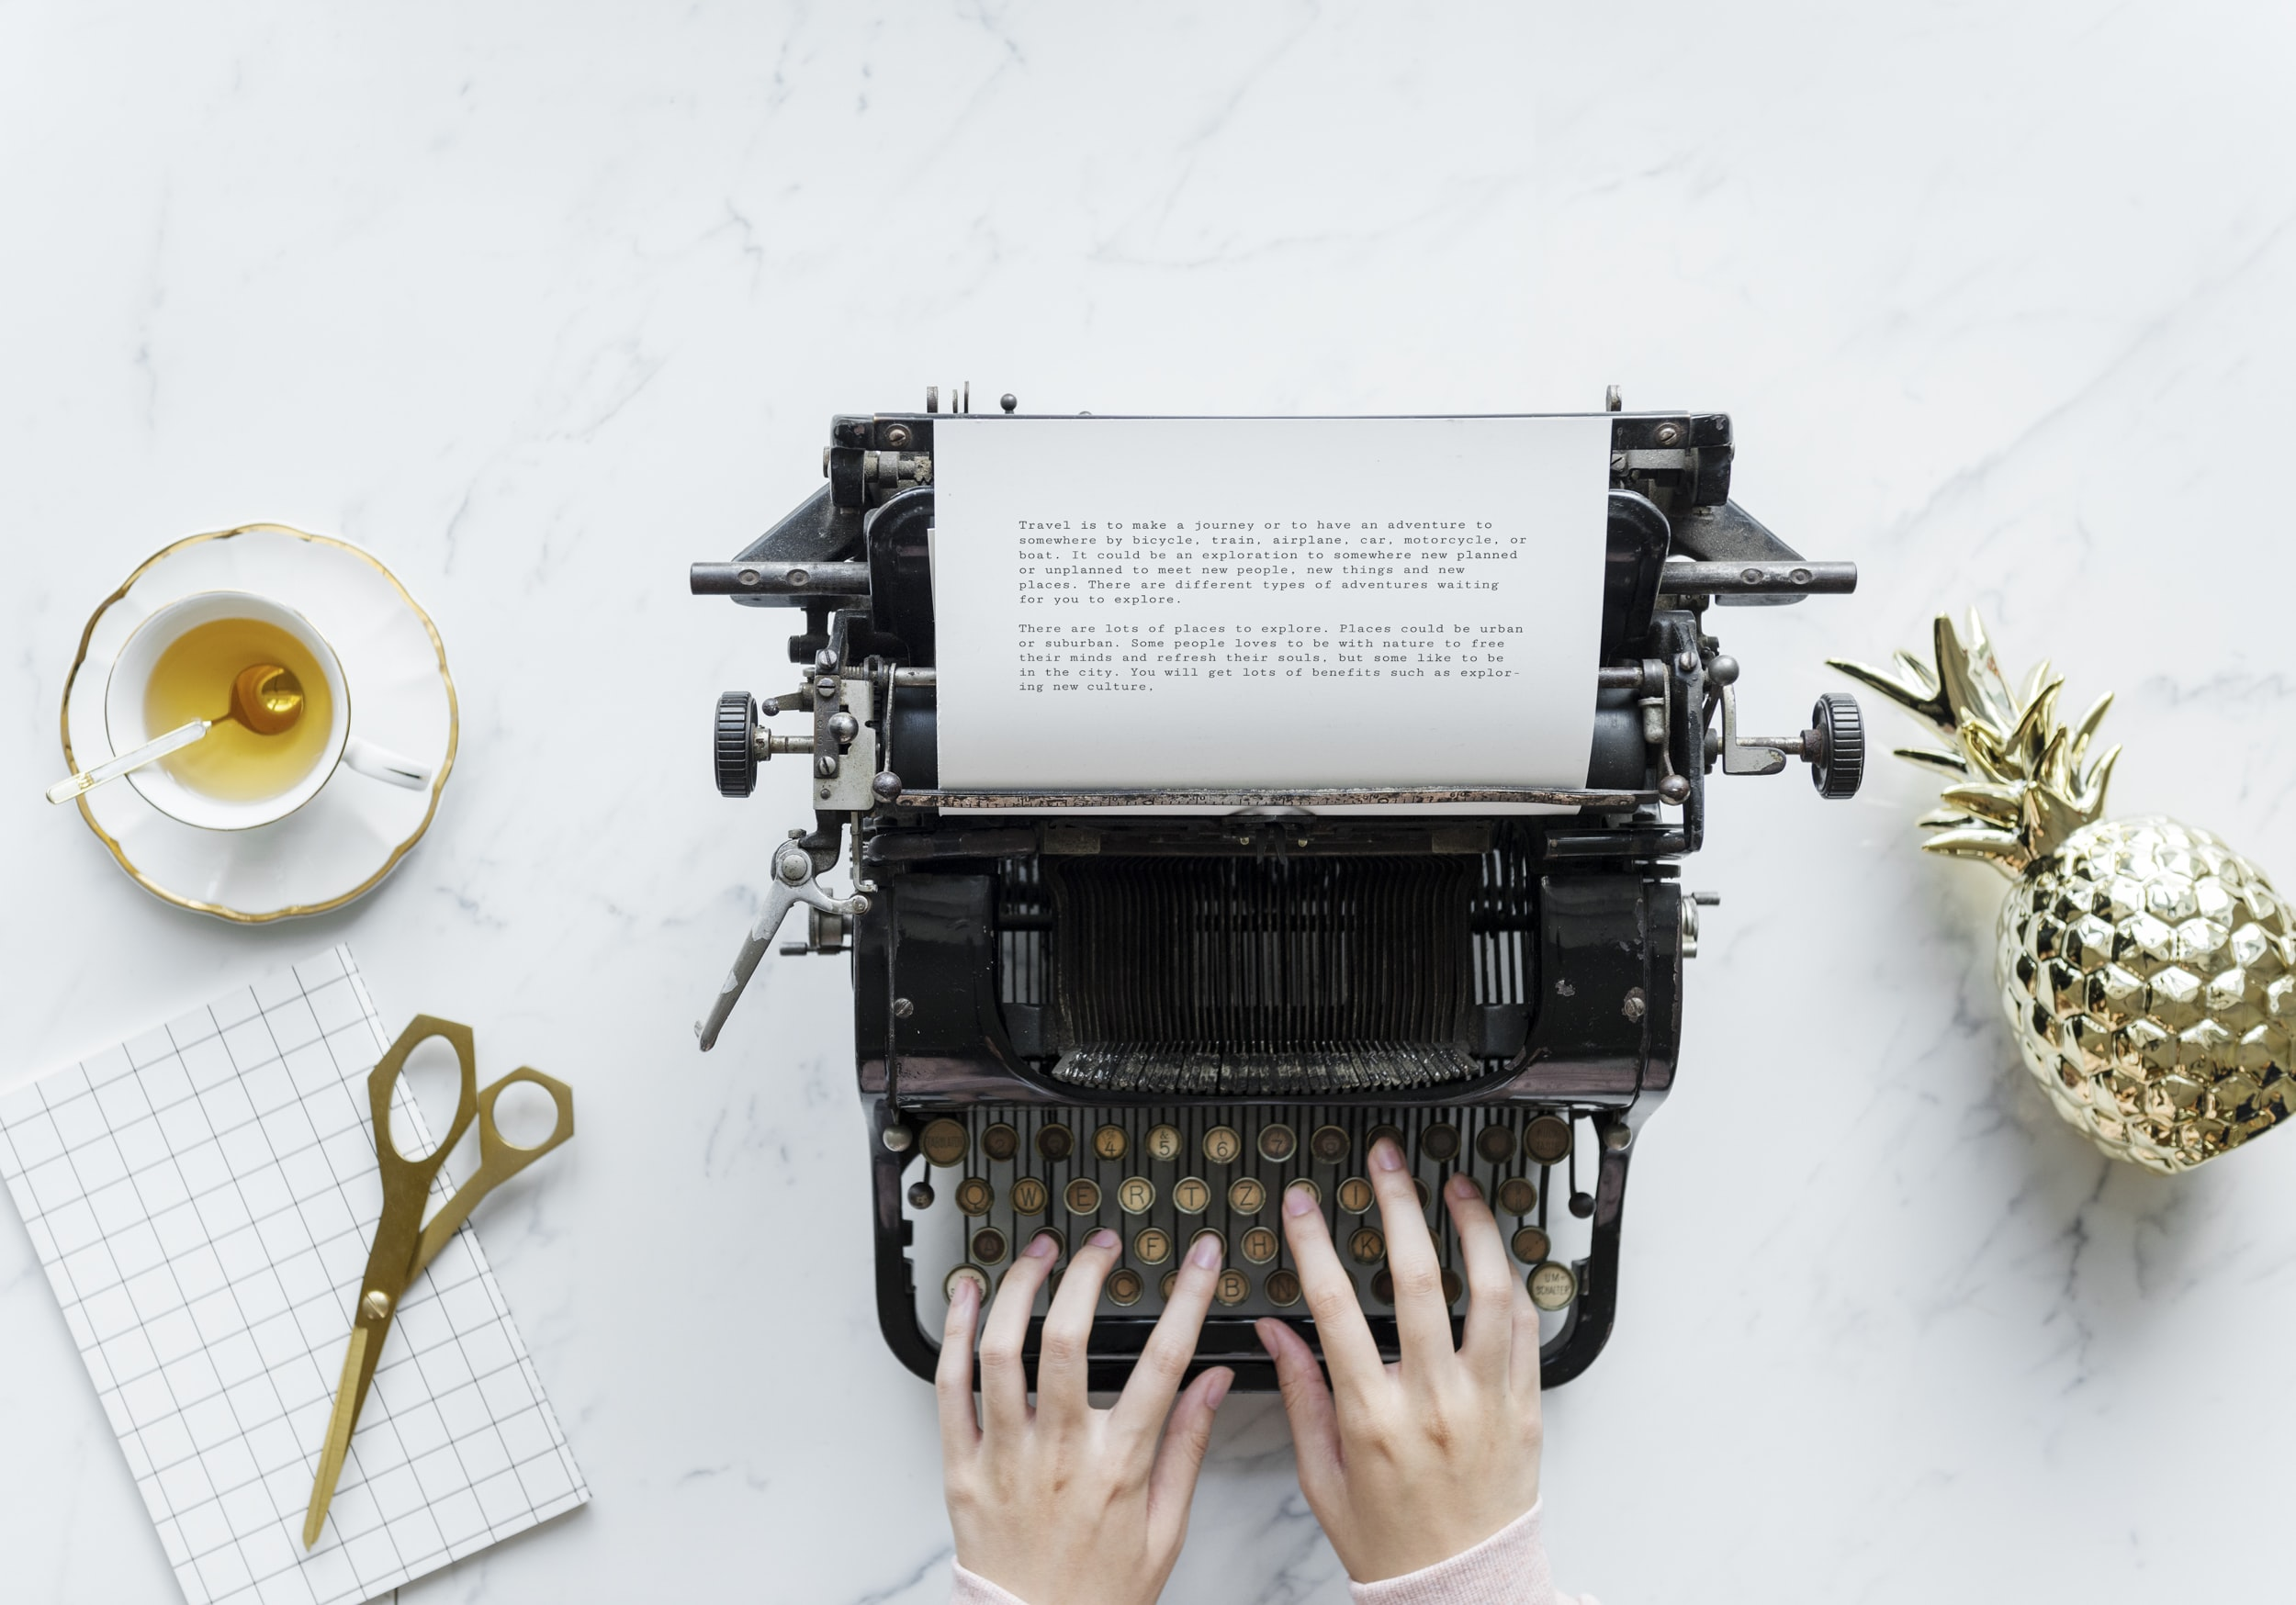 The writer's blessing writing stories